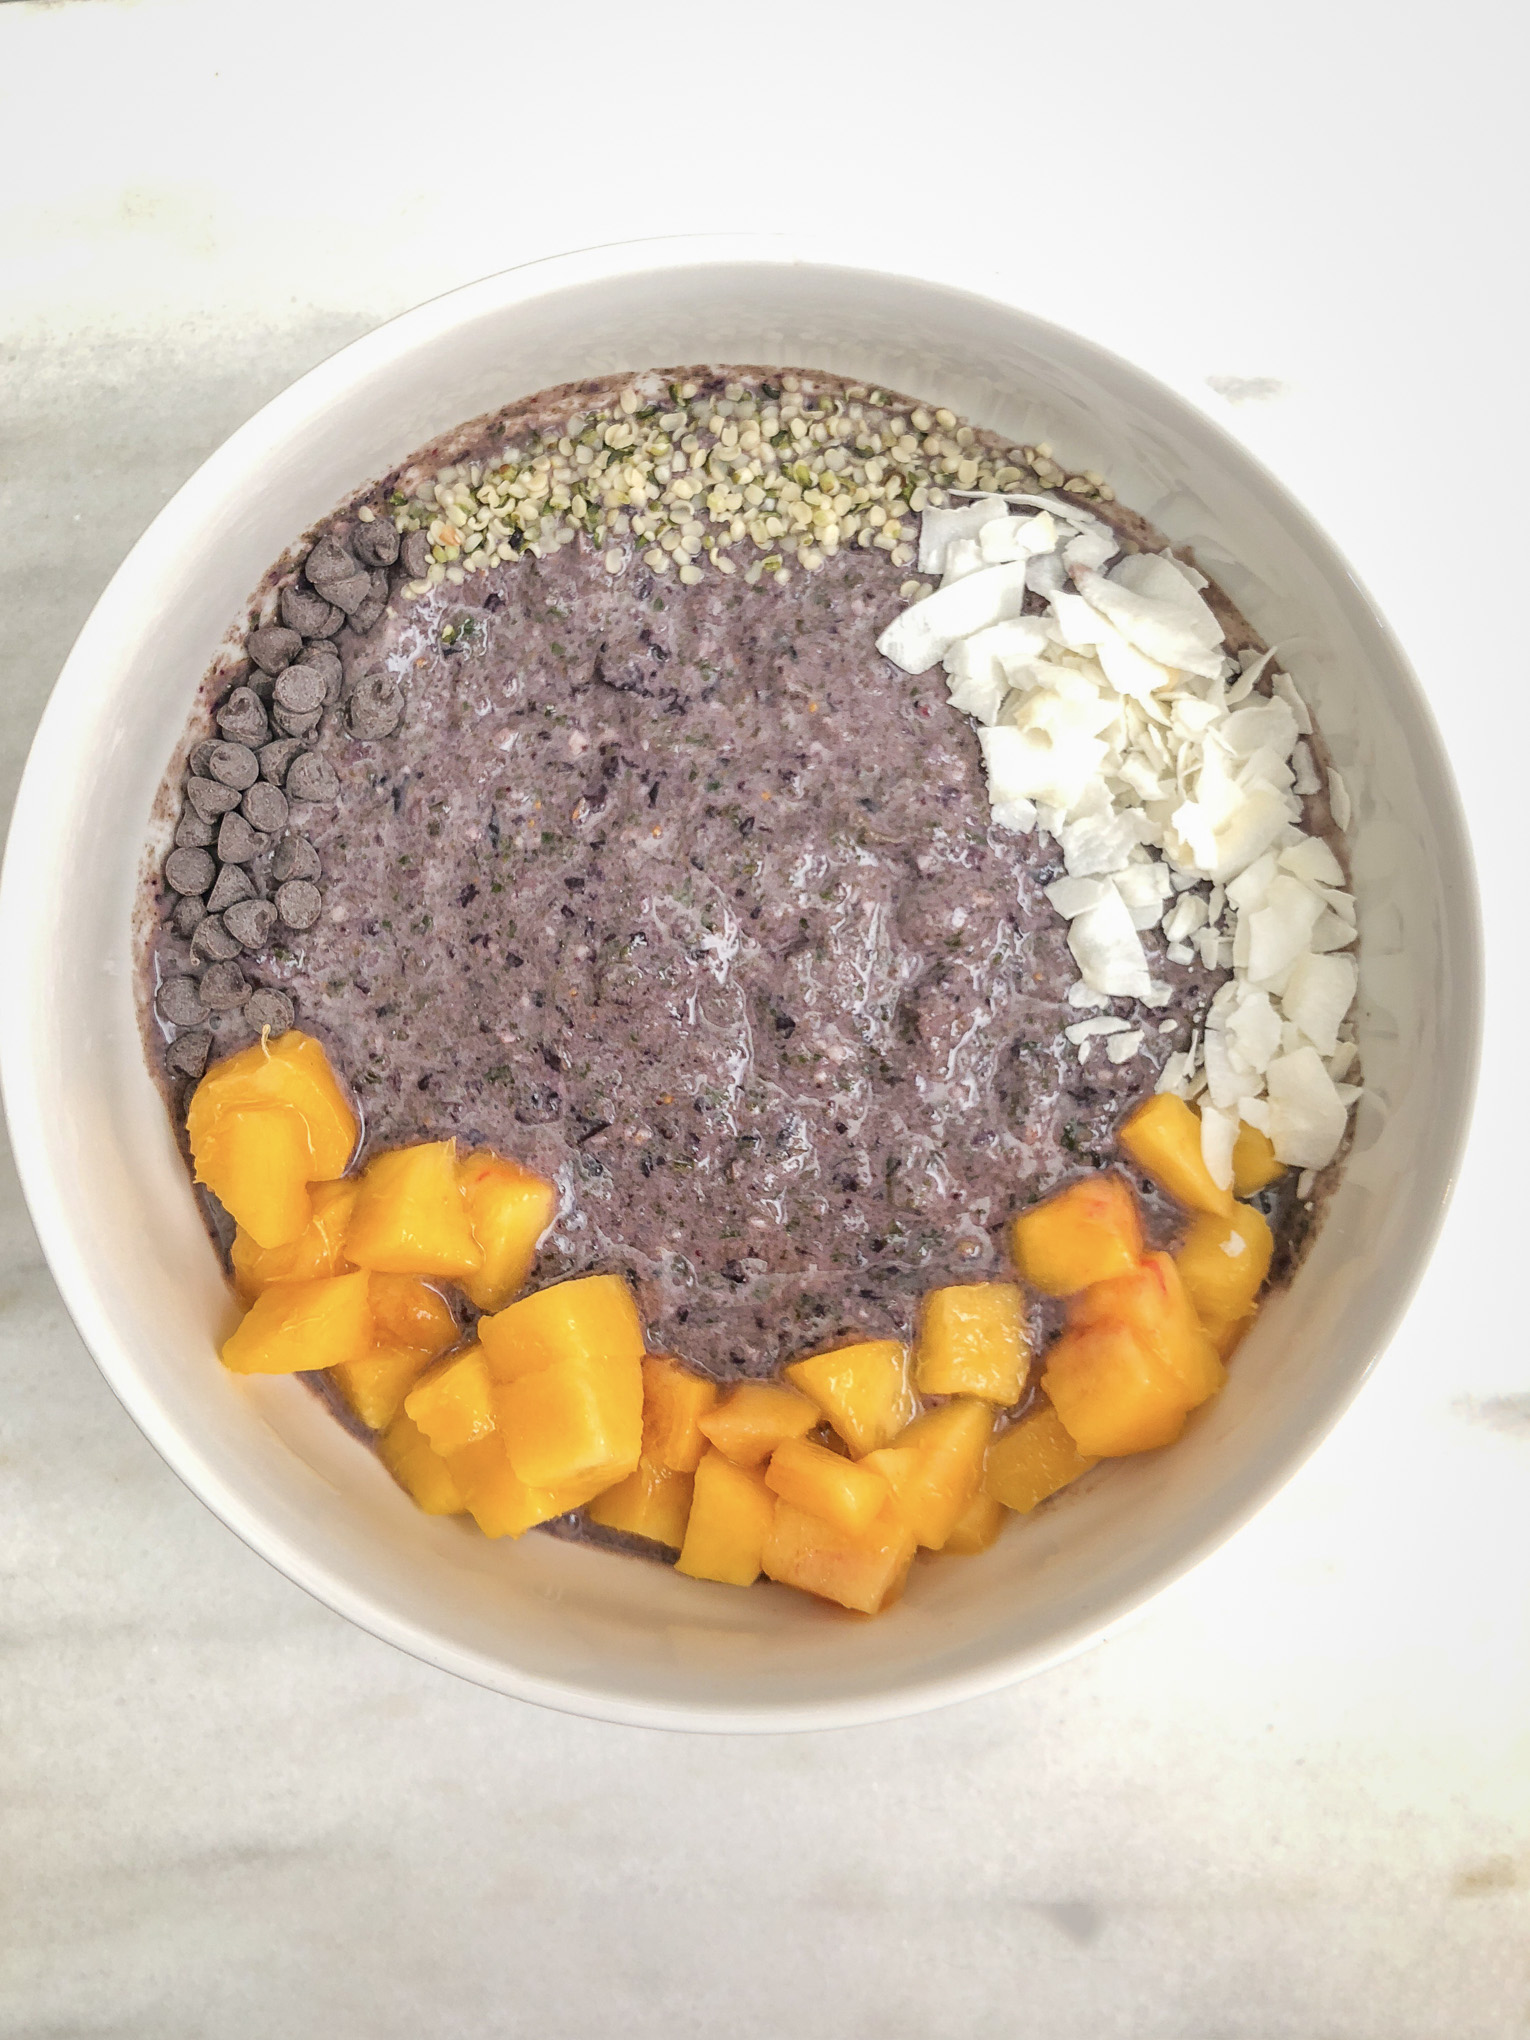 Smoothie bowl with toppings